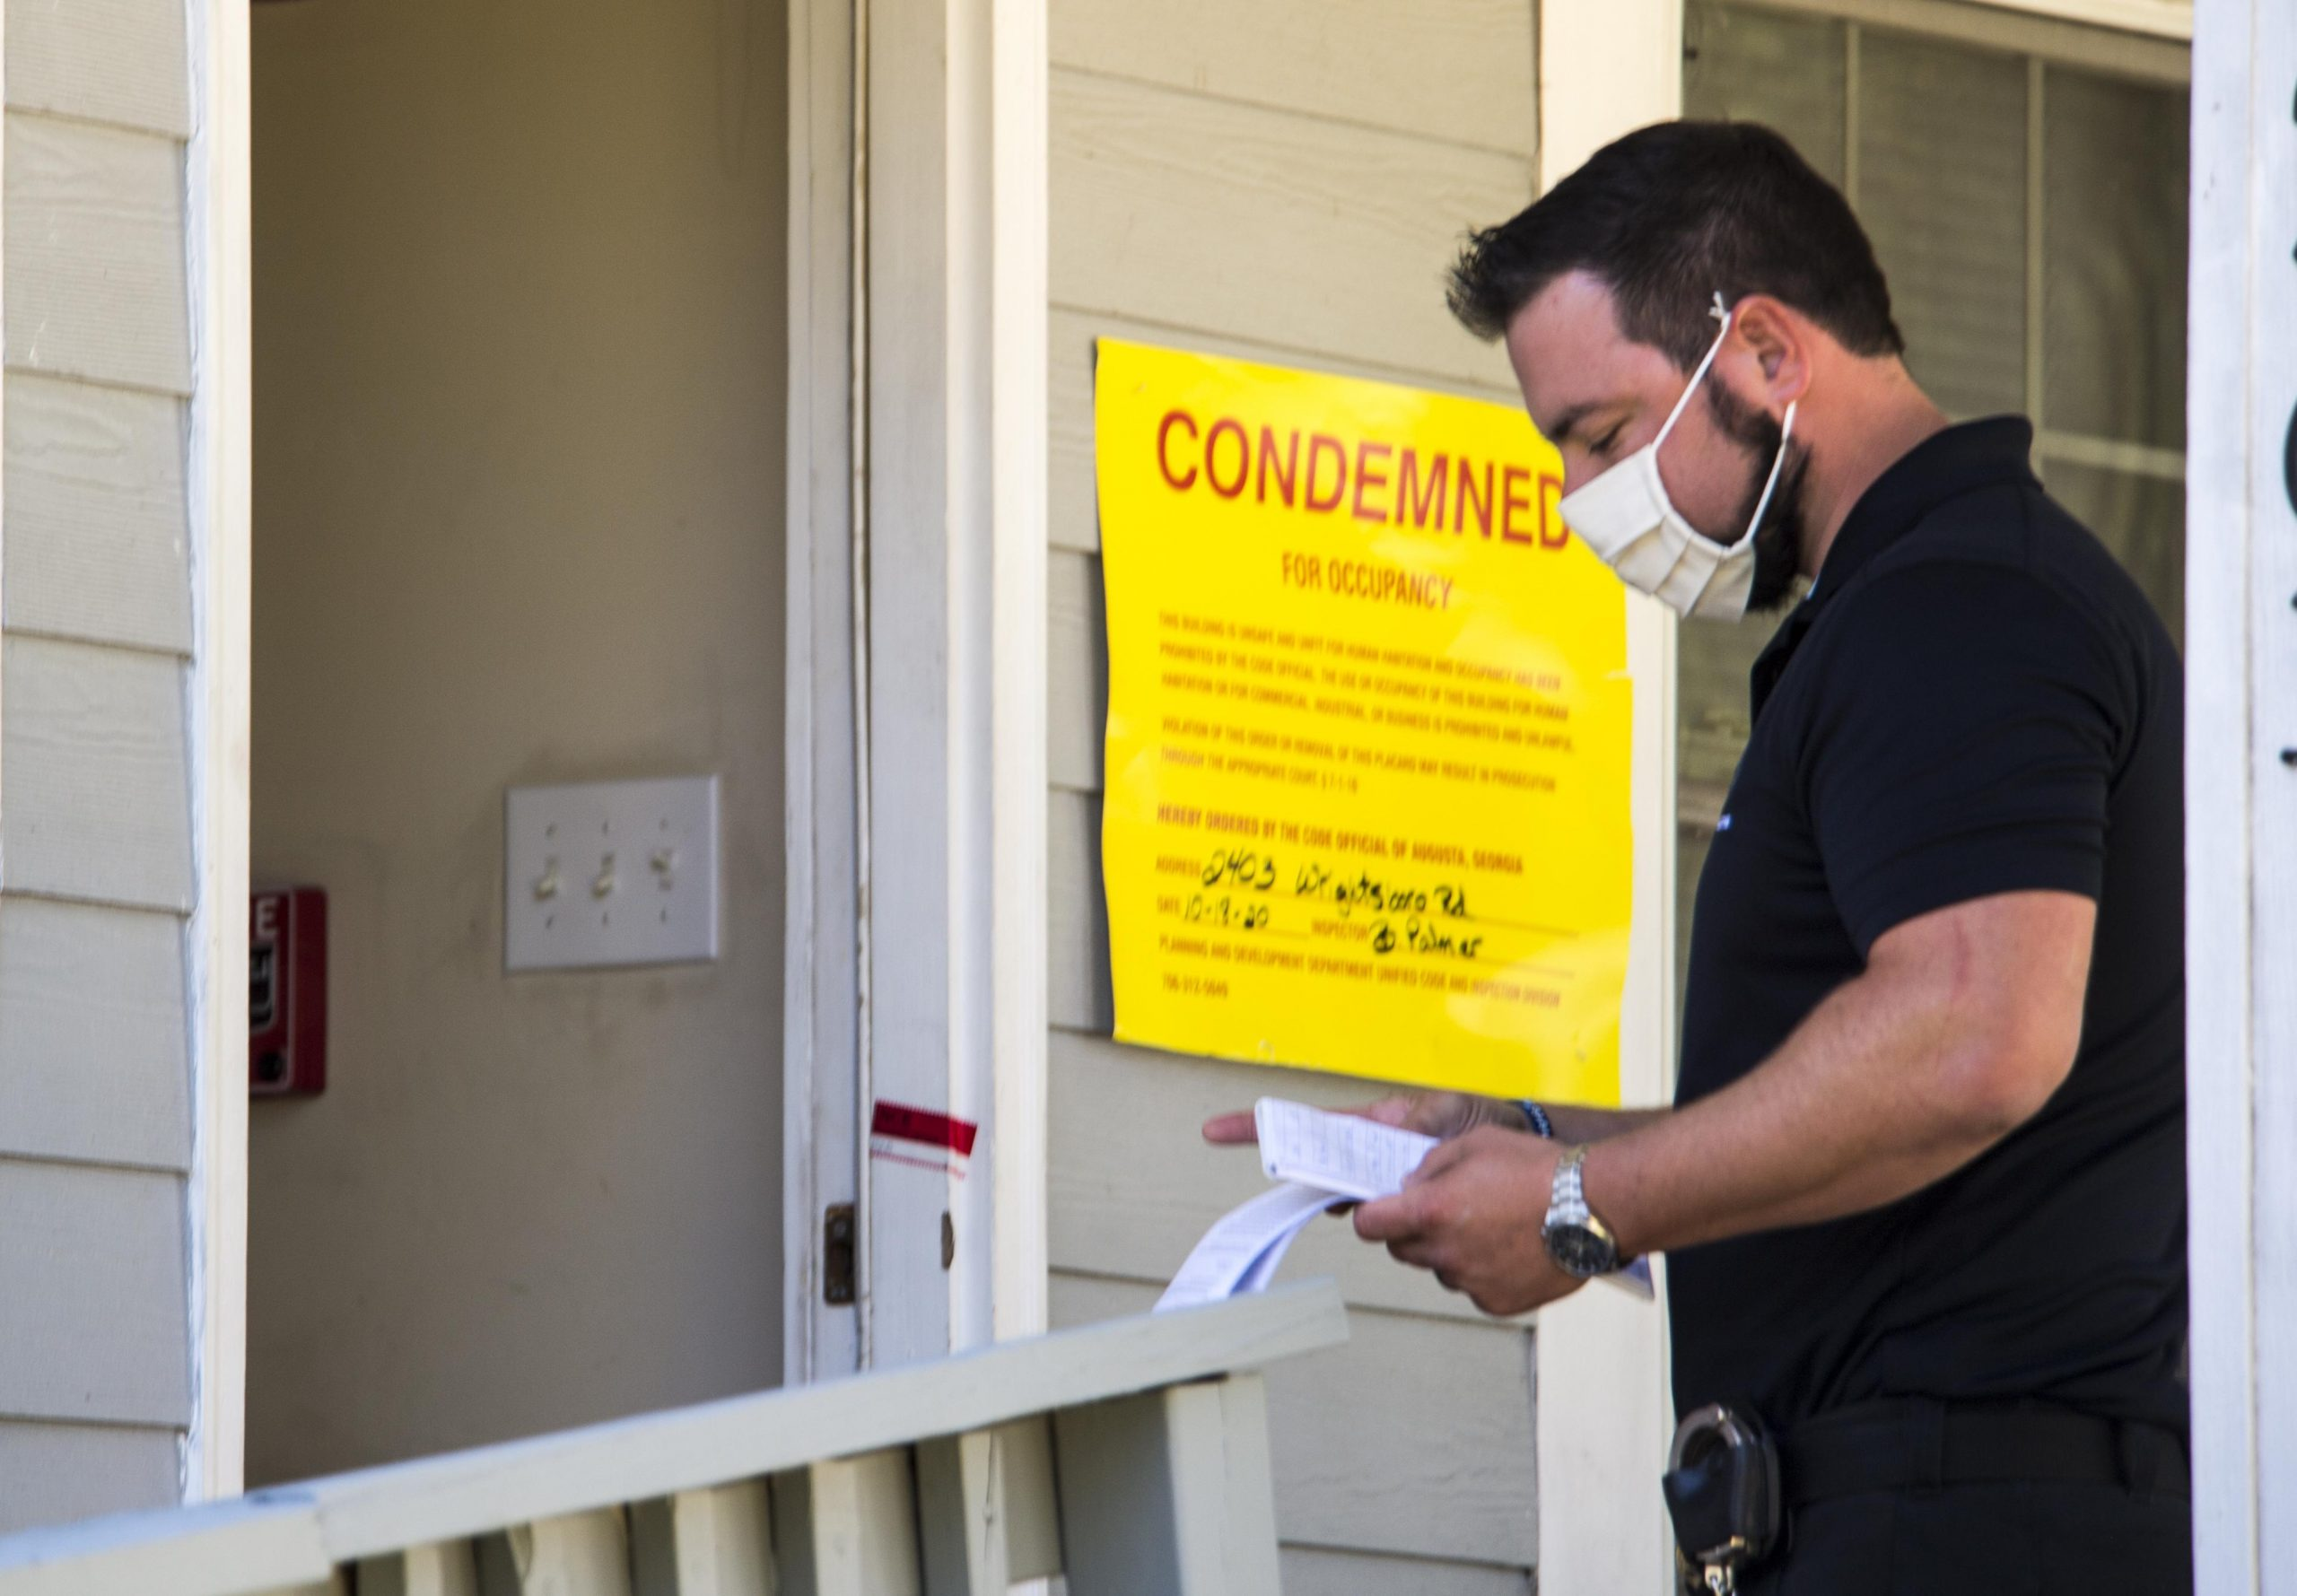 Investigation continues into Augusta personal care home where 2 found dead. Here's what we know. - News - The Augusta Chronicle